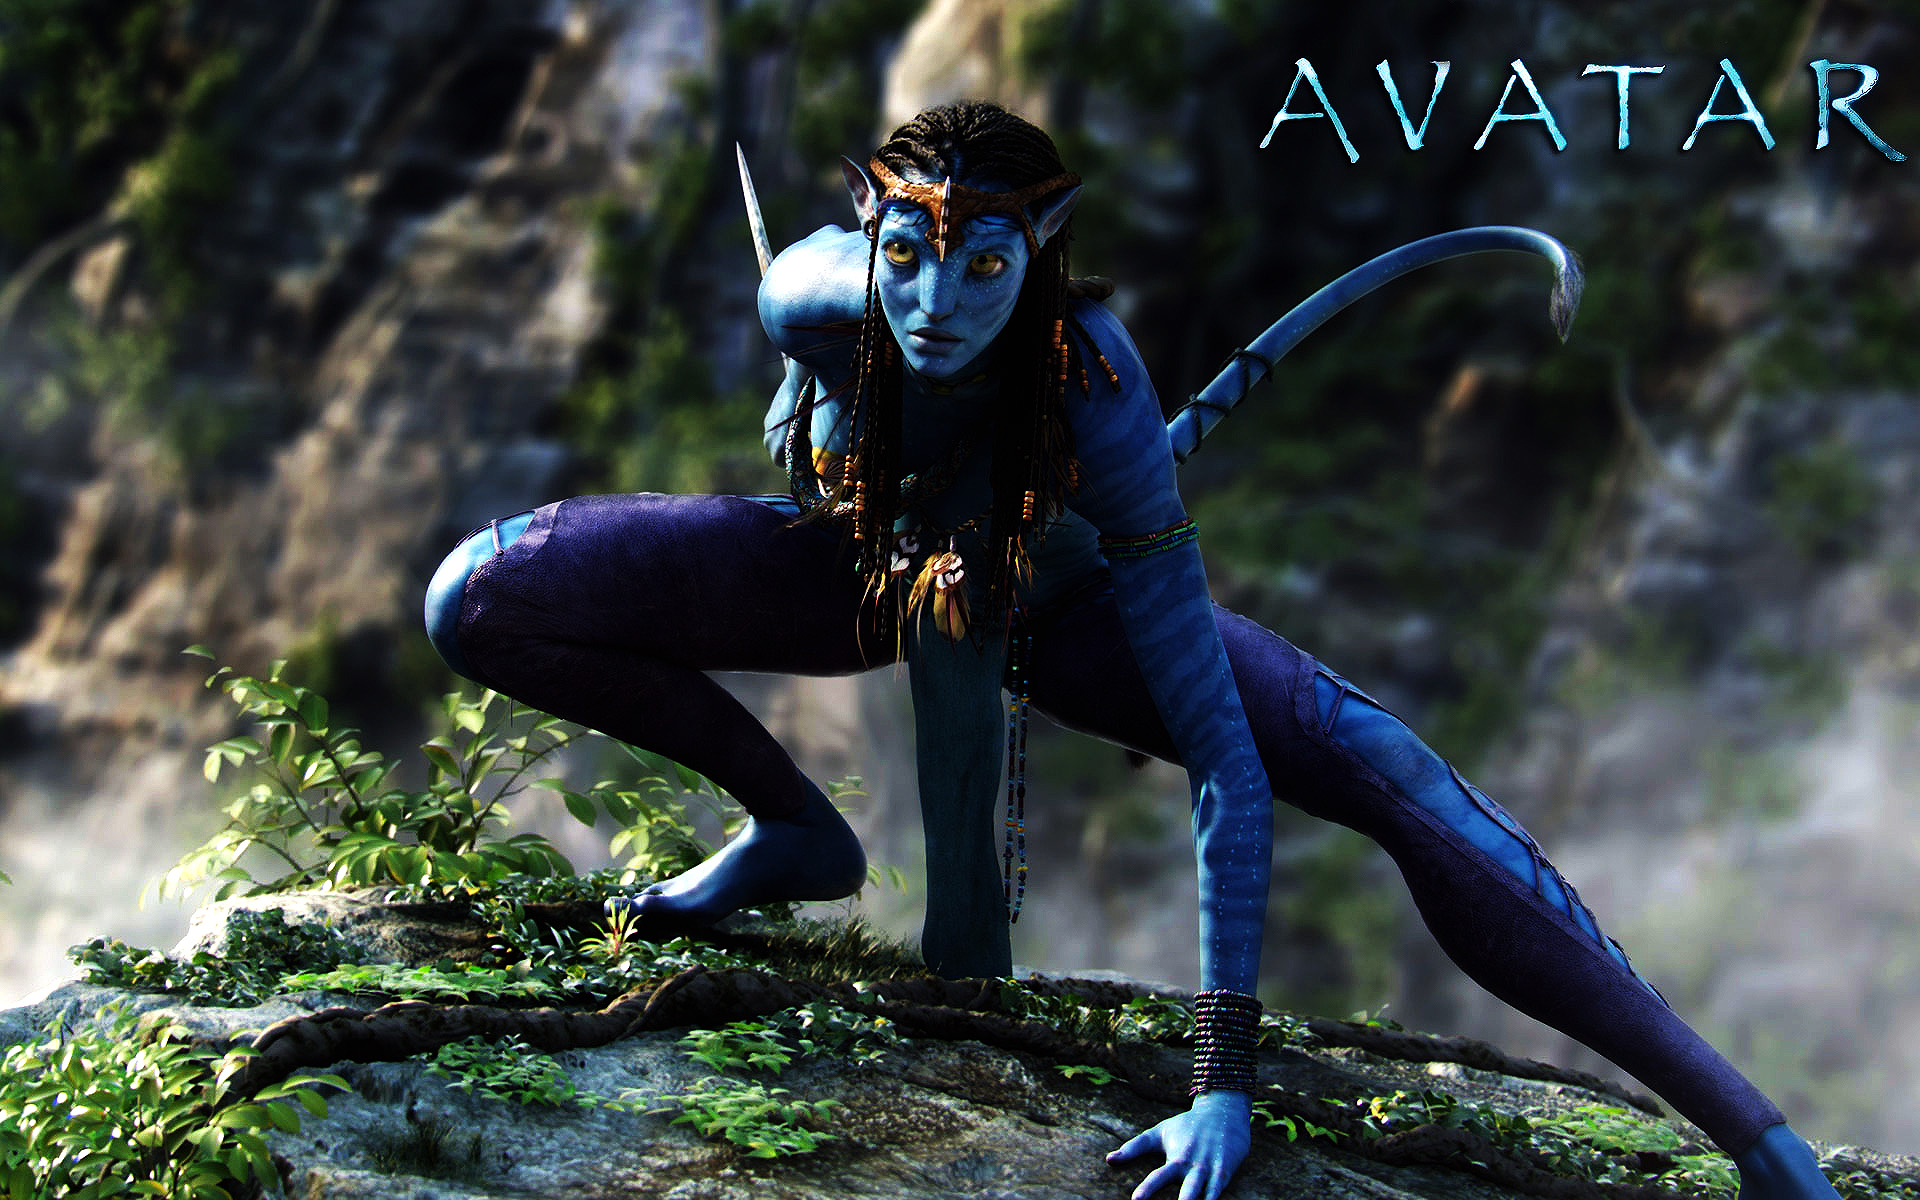 avatar movie wallpaper free download - sf wallpaper